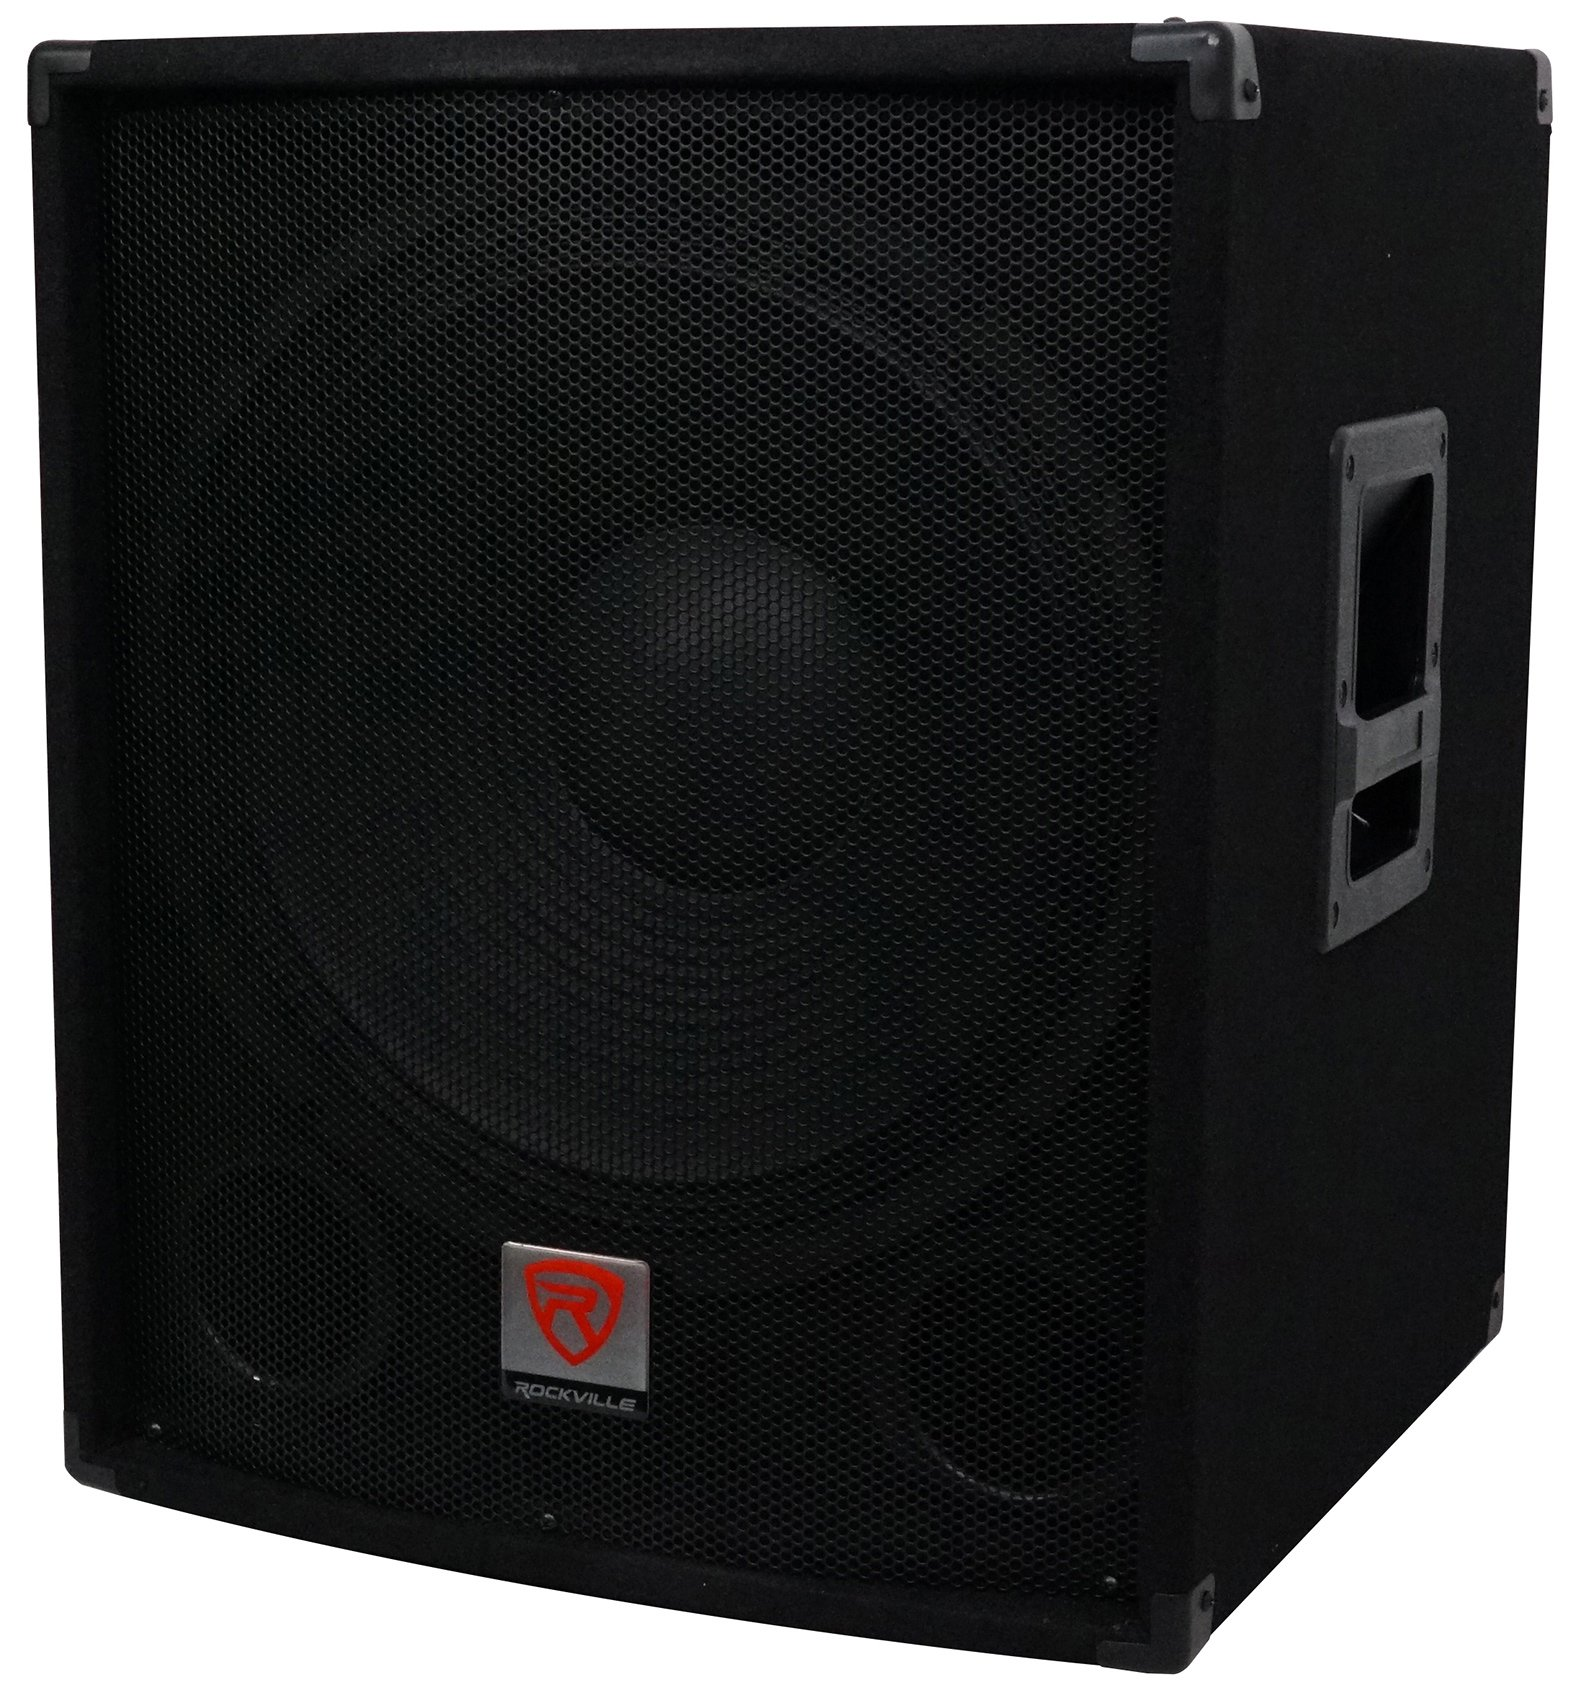 Rockville SBG1184 18'' 1000 Watt Subwoofer Sub For Church Sound Systems by Rockville